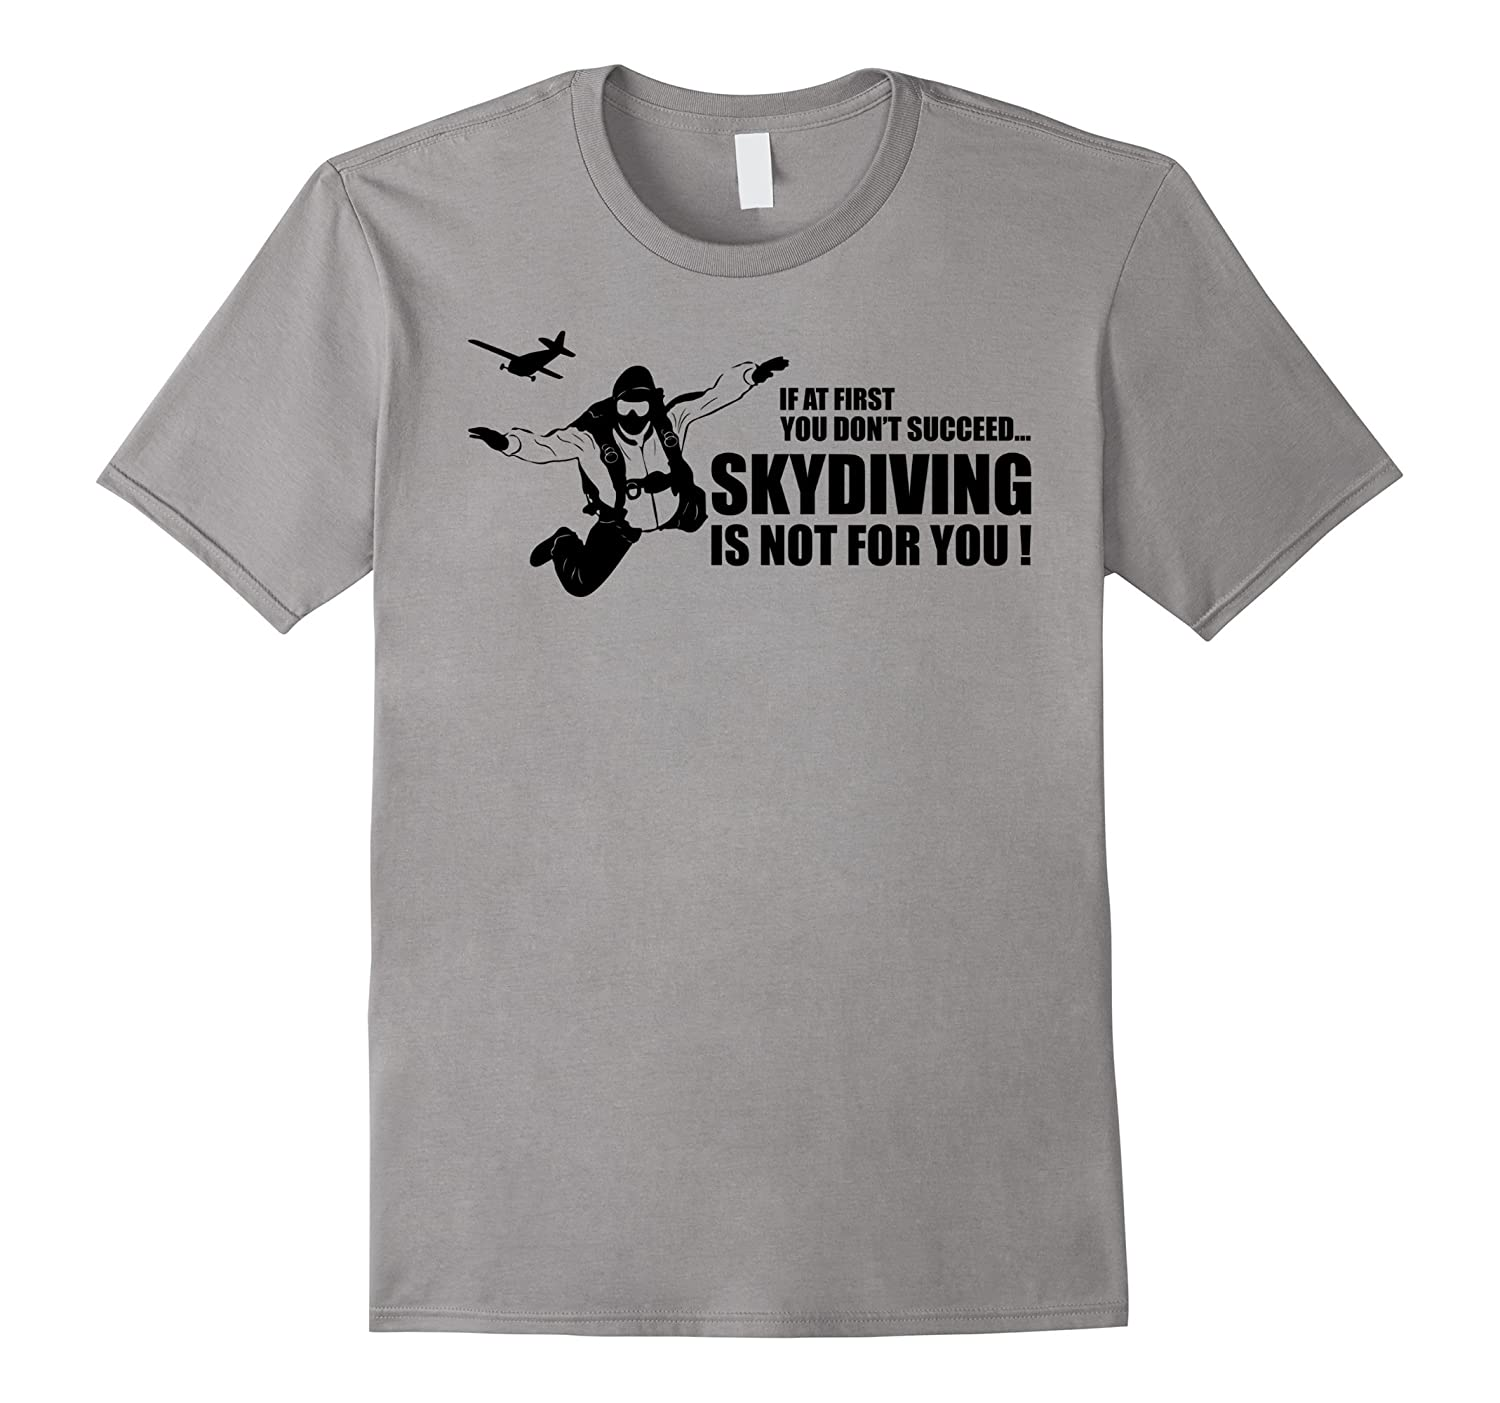 If At First You Don't Succeed Skydiving Is Not for You Funny-Art